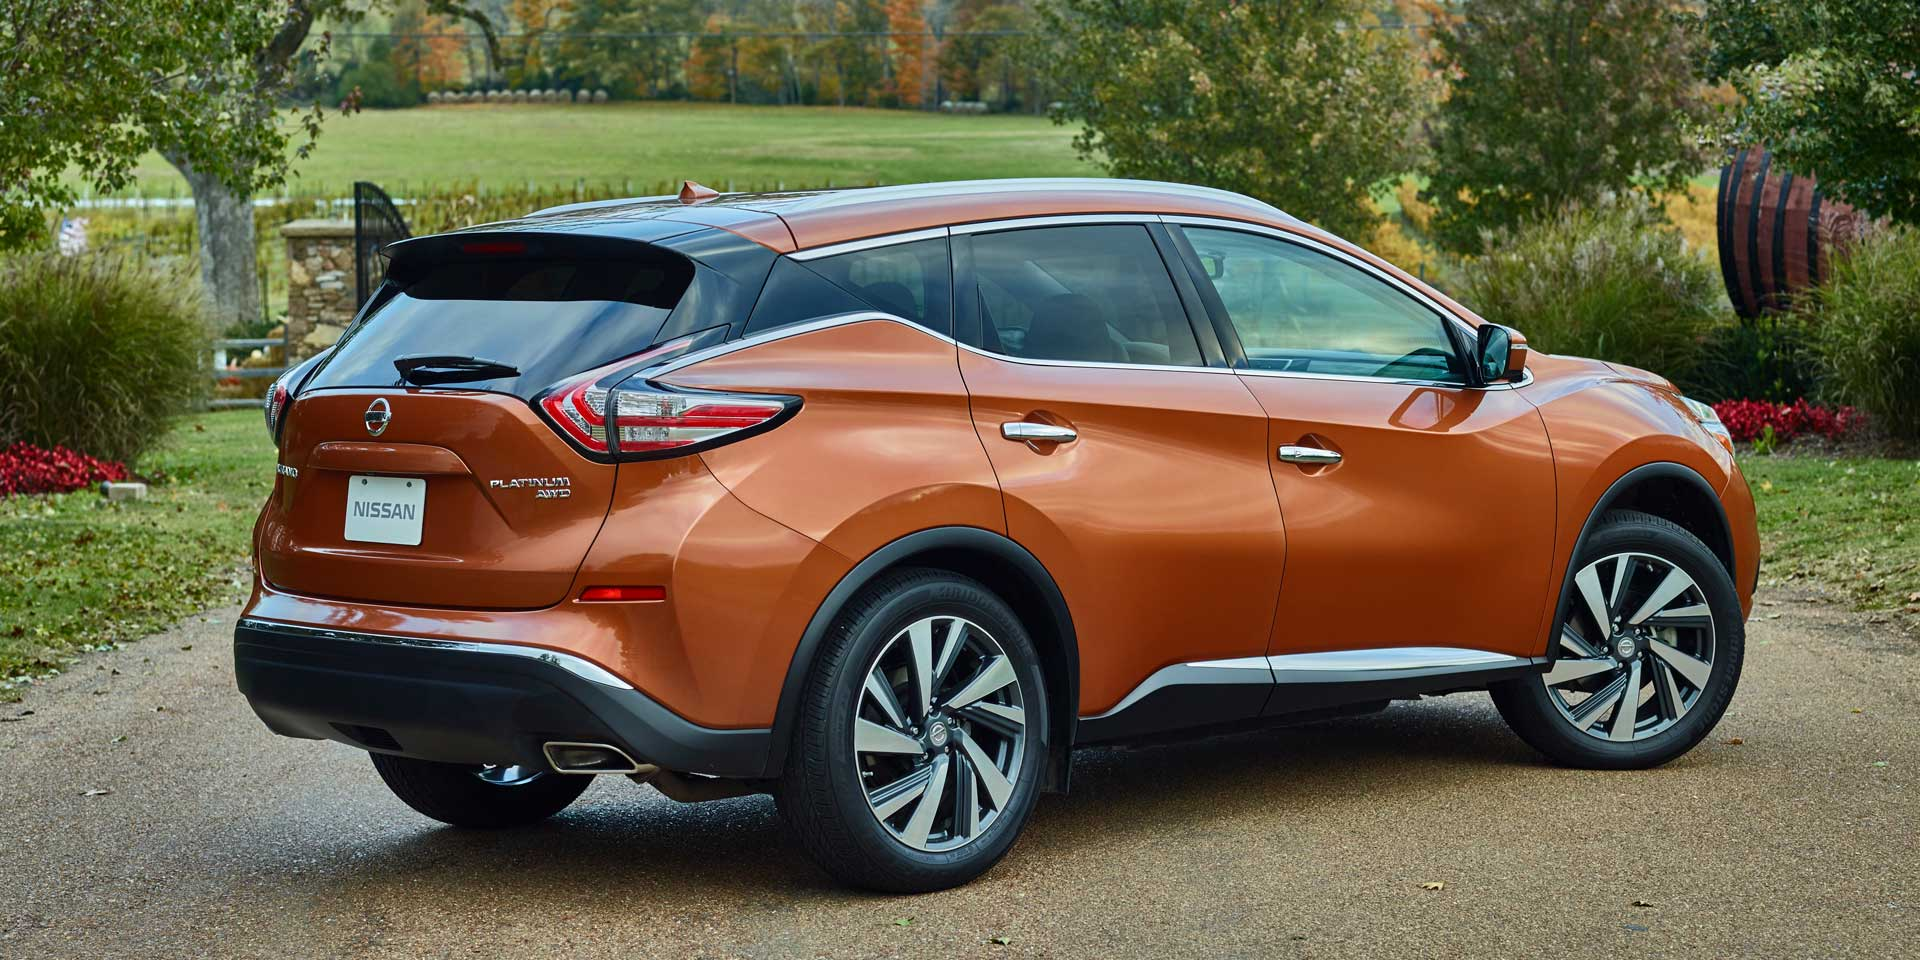 2018 Nissan Murano Vehicles On Display Chicago